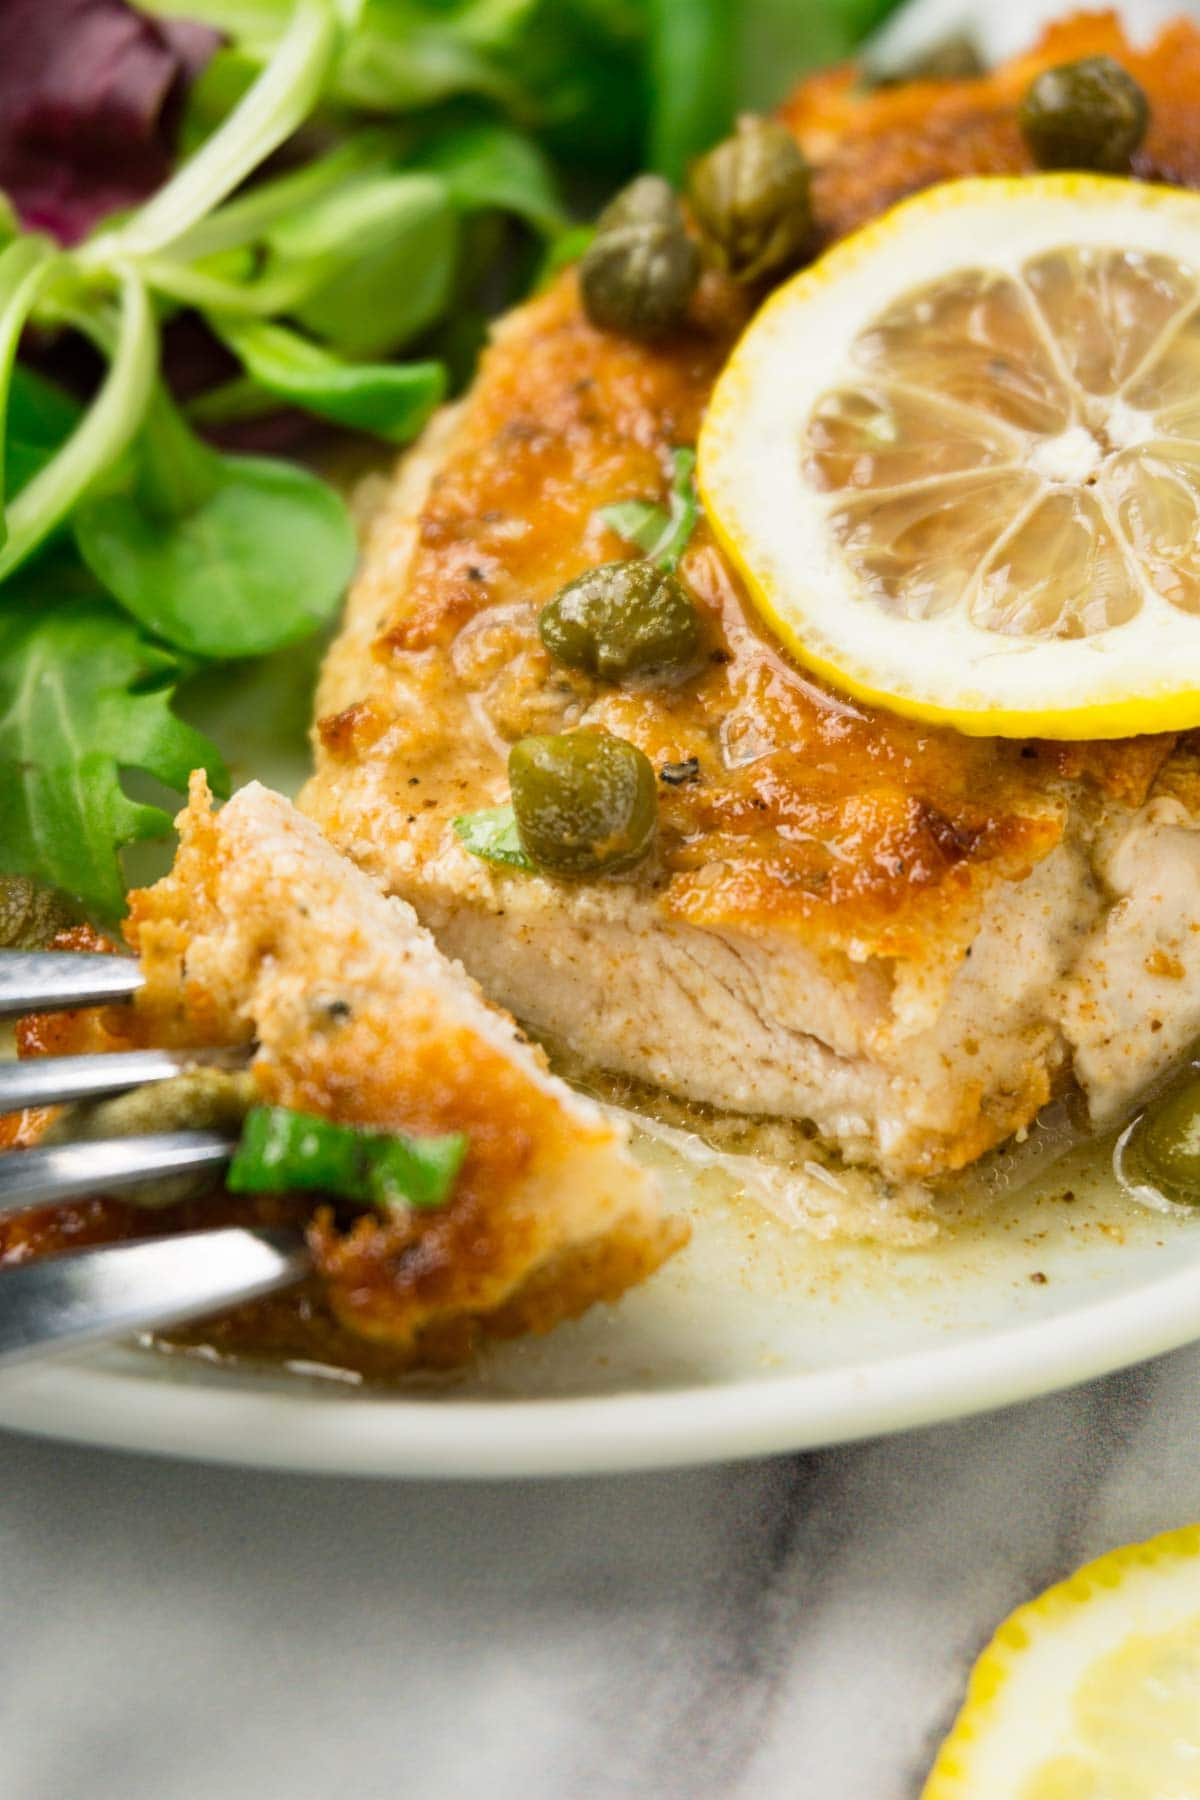 Chicken piccata on a plate garnished with fresh lemon slice and cappers, one piece is taken.